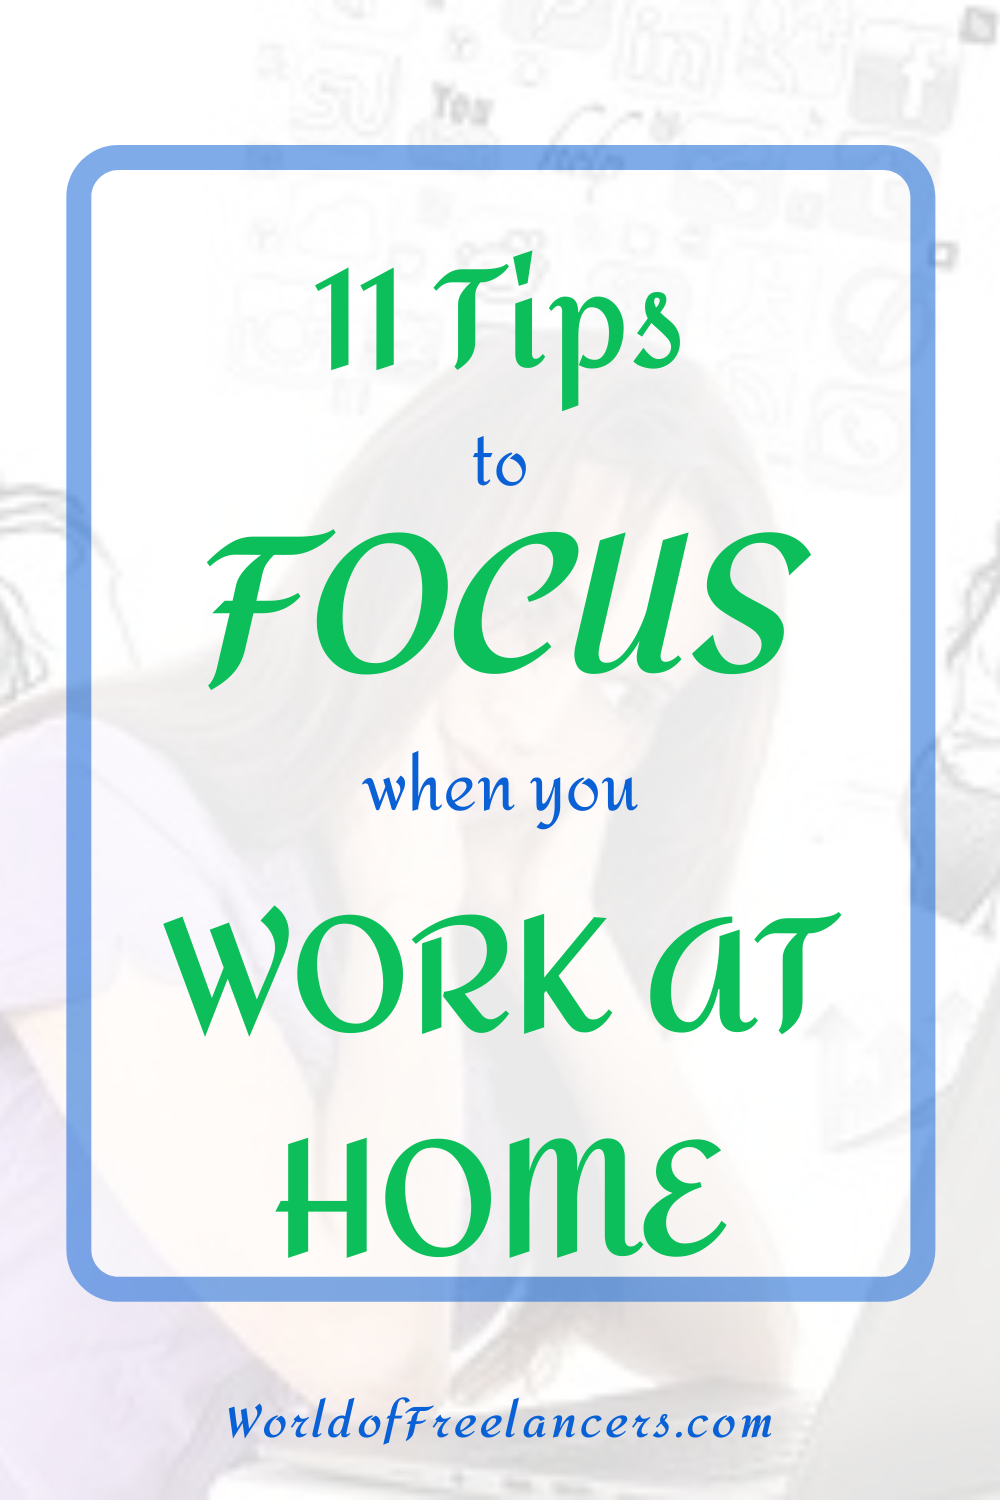 11 tips to focus when you work at home